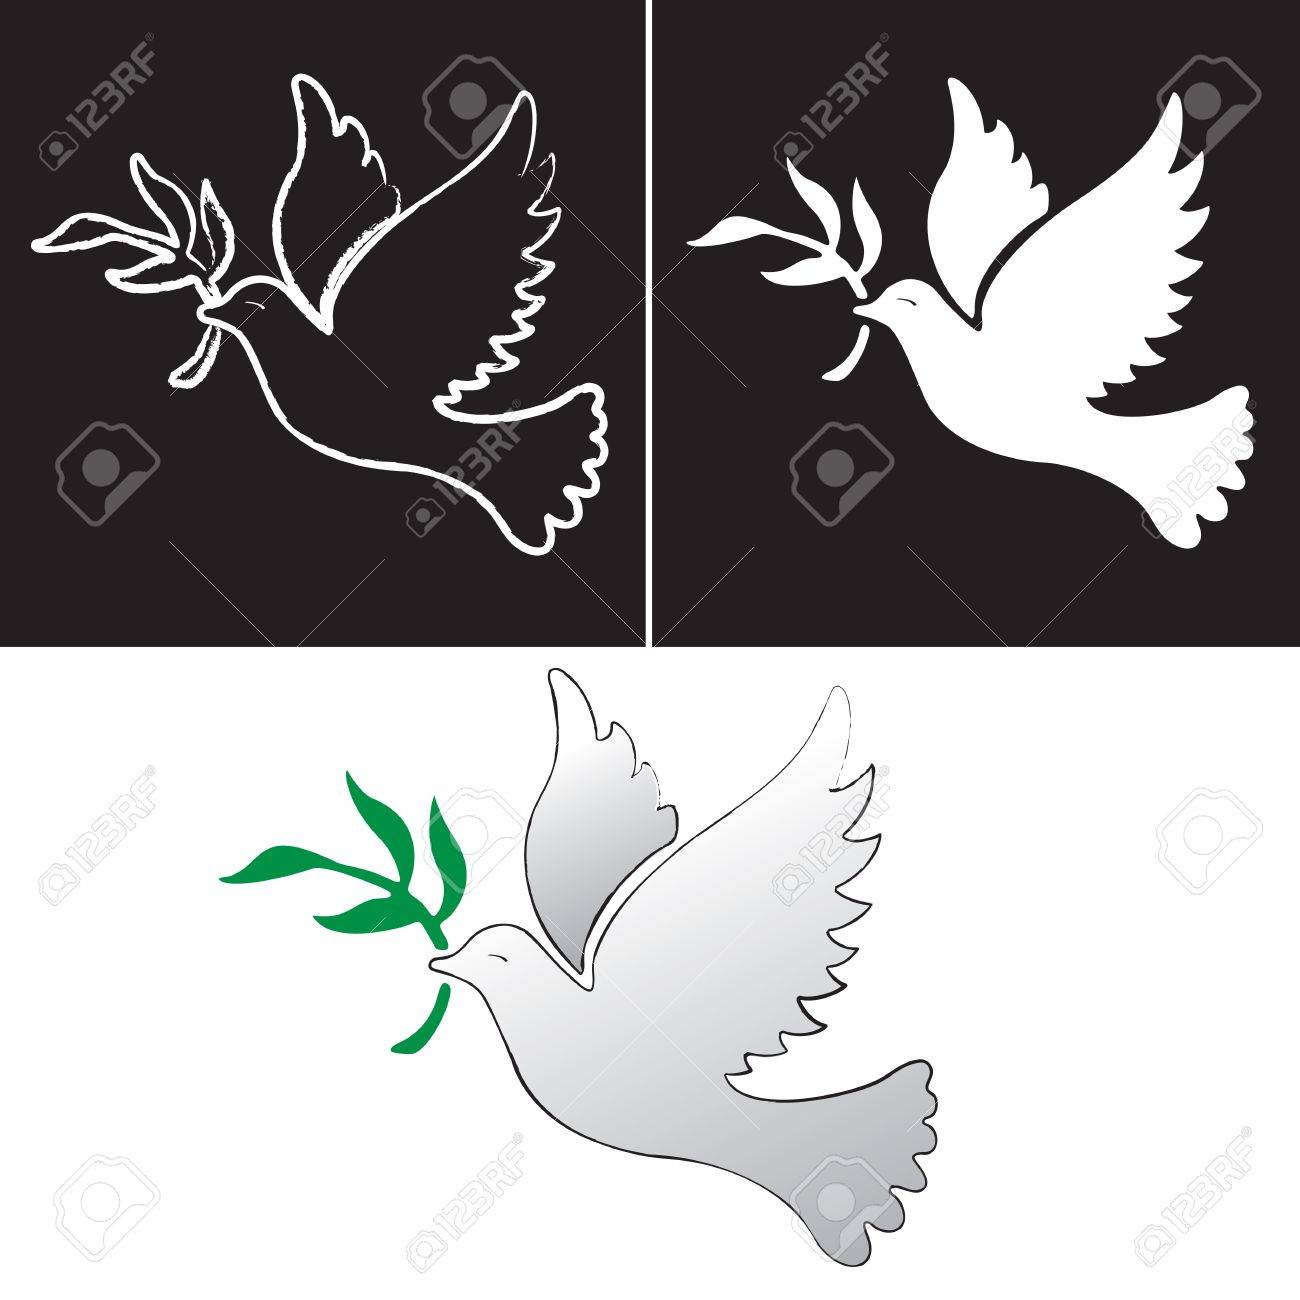 A free flying vector white dove symbol Stock Vector - 16553969